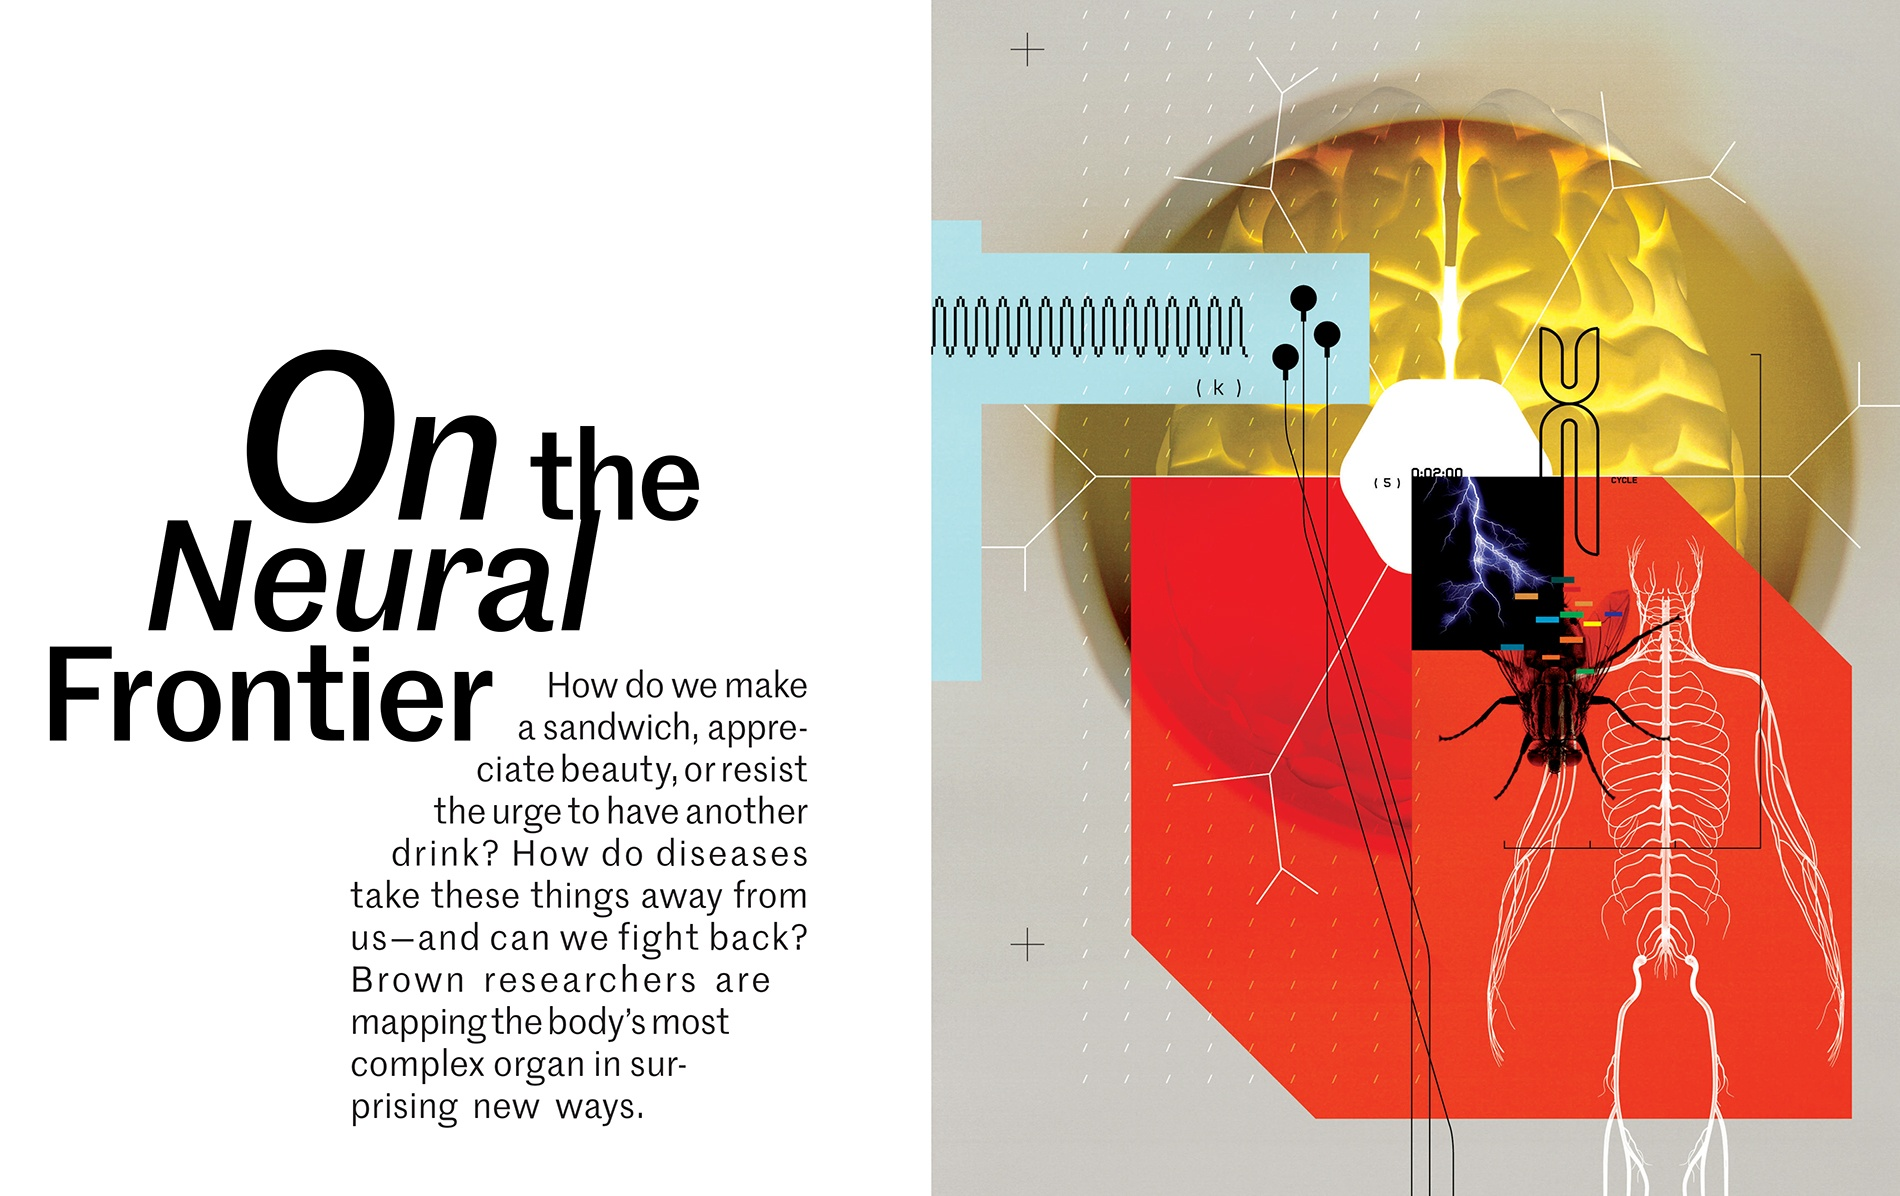 Brain science illo showing a brain, nervous system, dna marker, and a fly